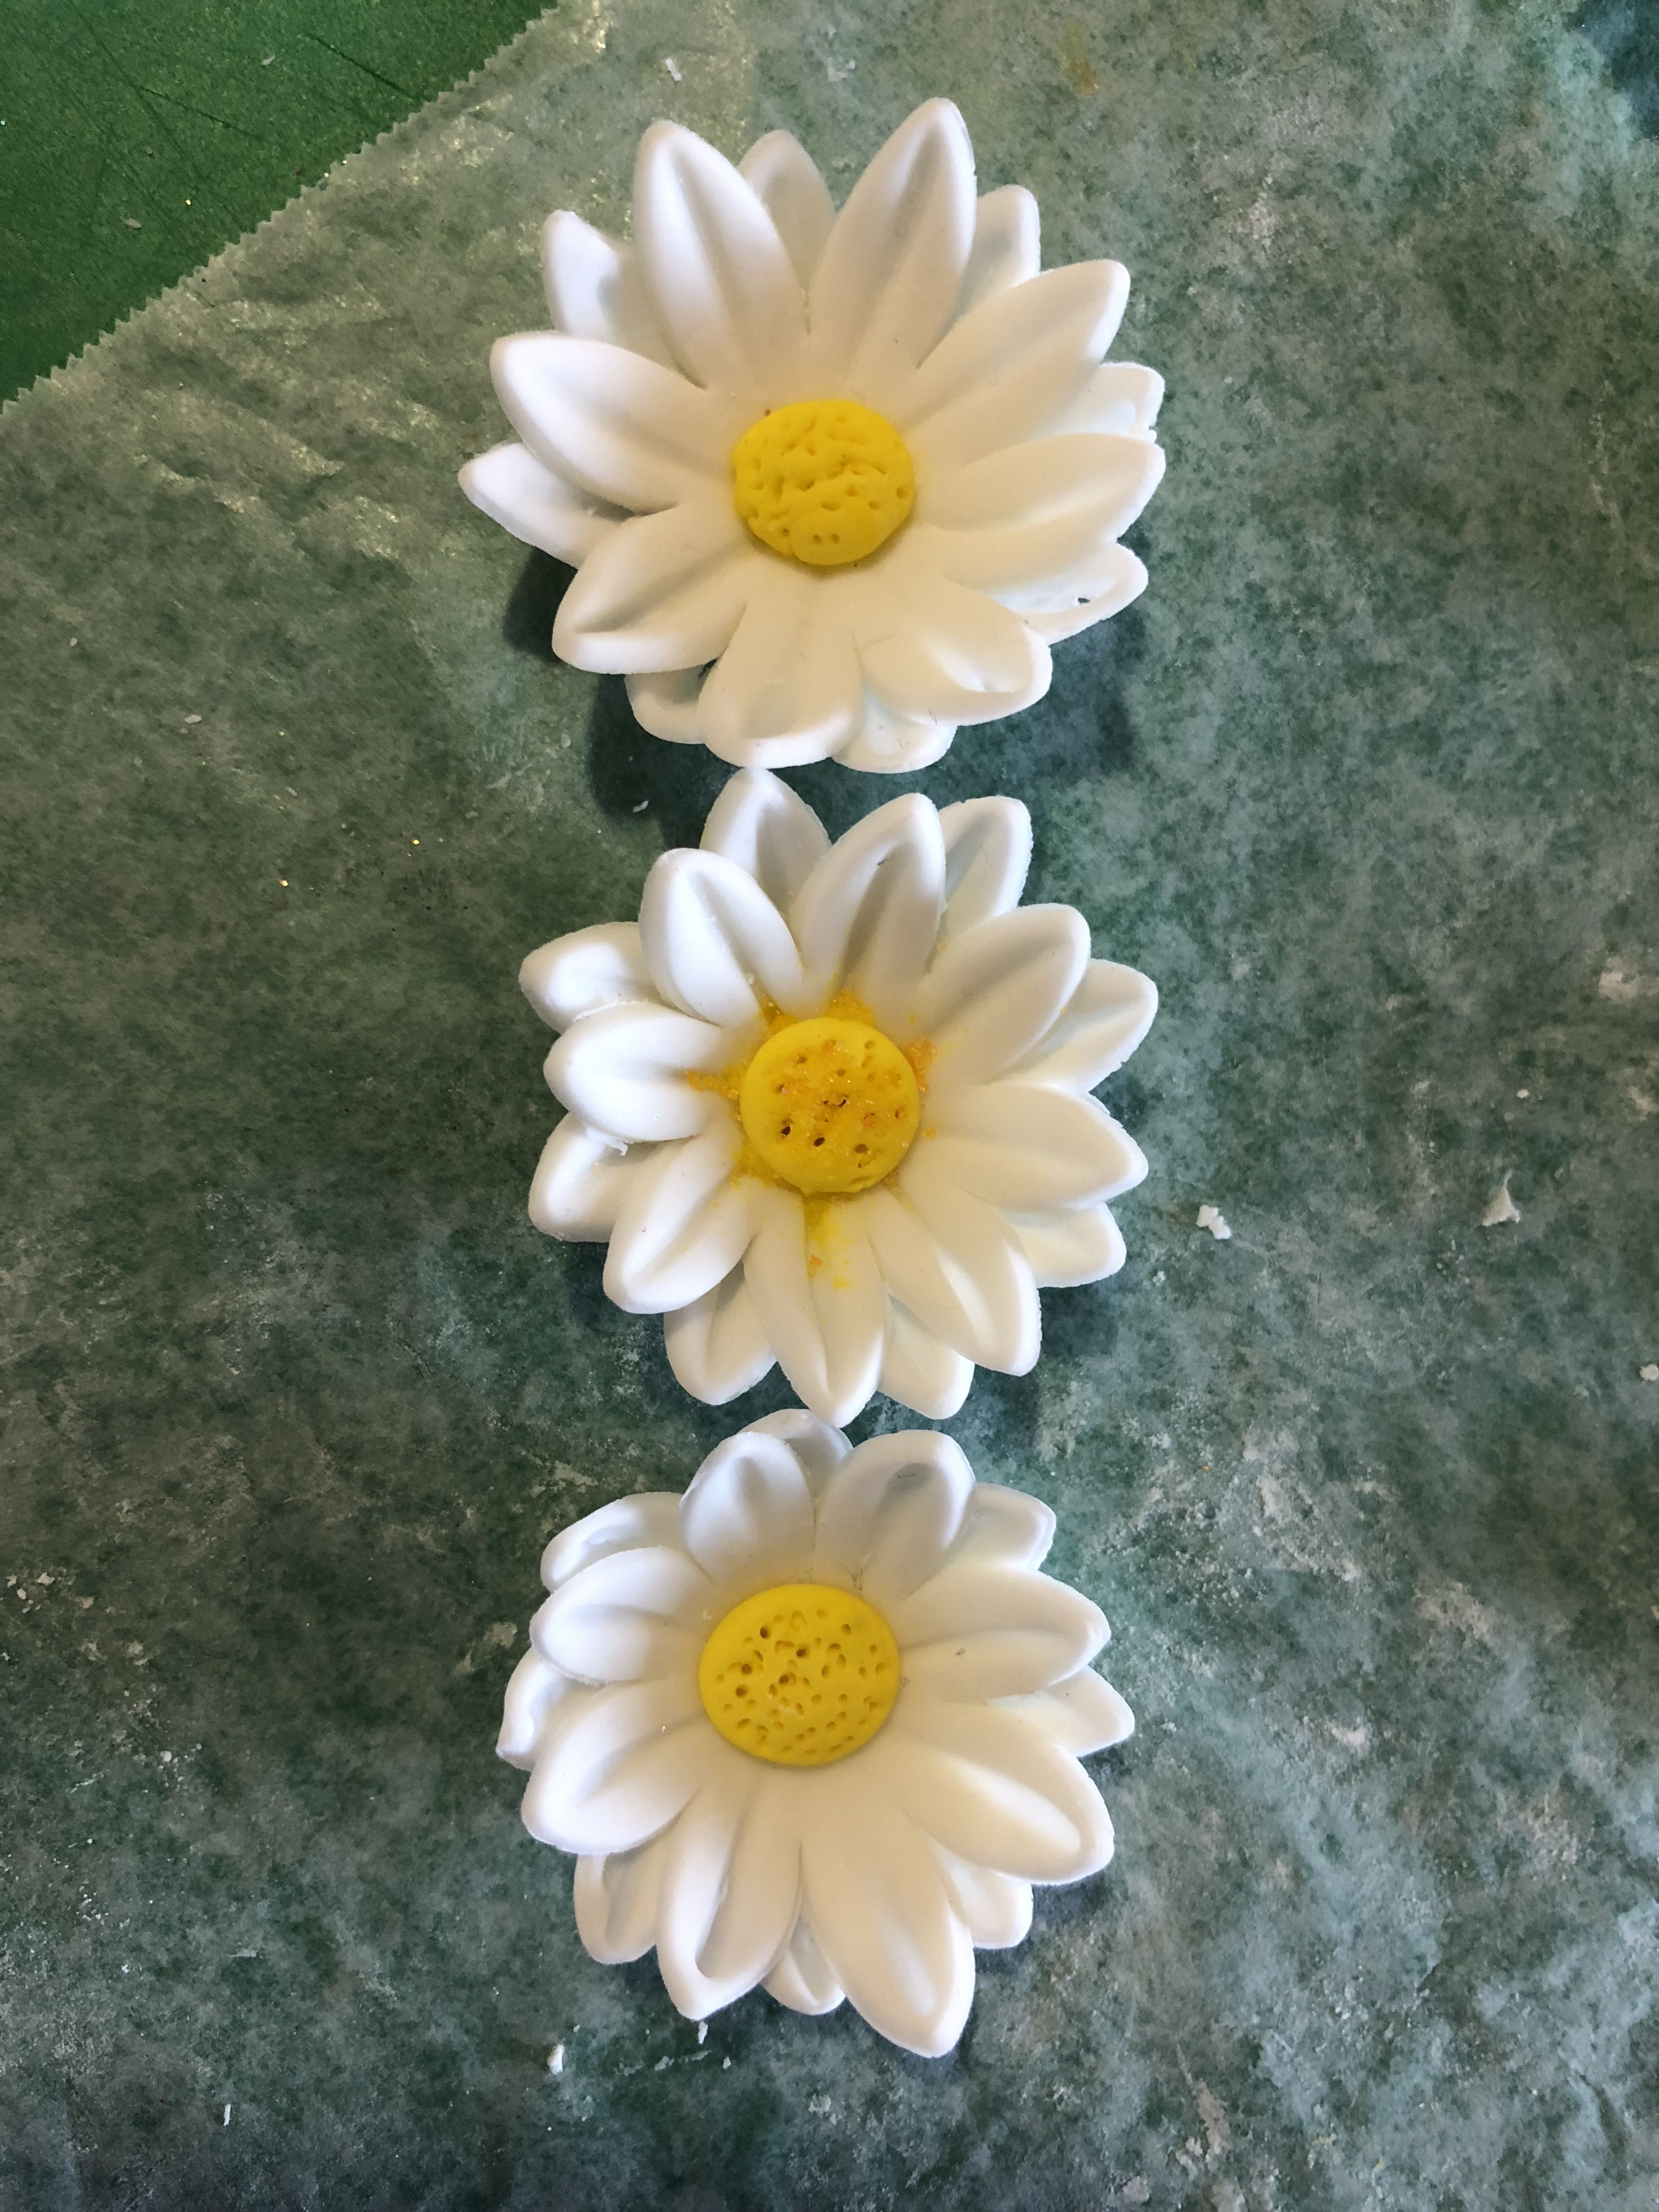 Pin by fine creations by maria on gum paste flowers and cake gum paste flowers cake decorating daisy sugar paste flowers margarita flower bellis perennis fondant flowers daisies izmirmasajfo